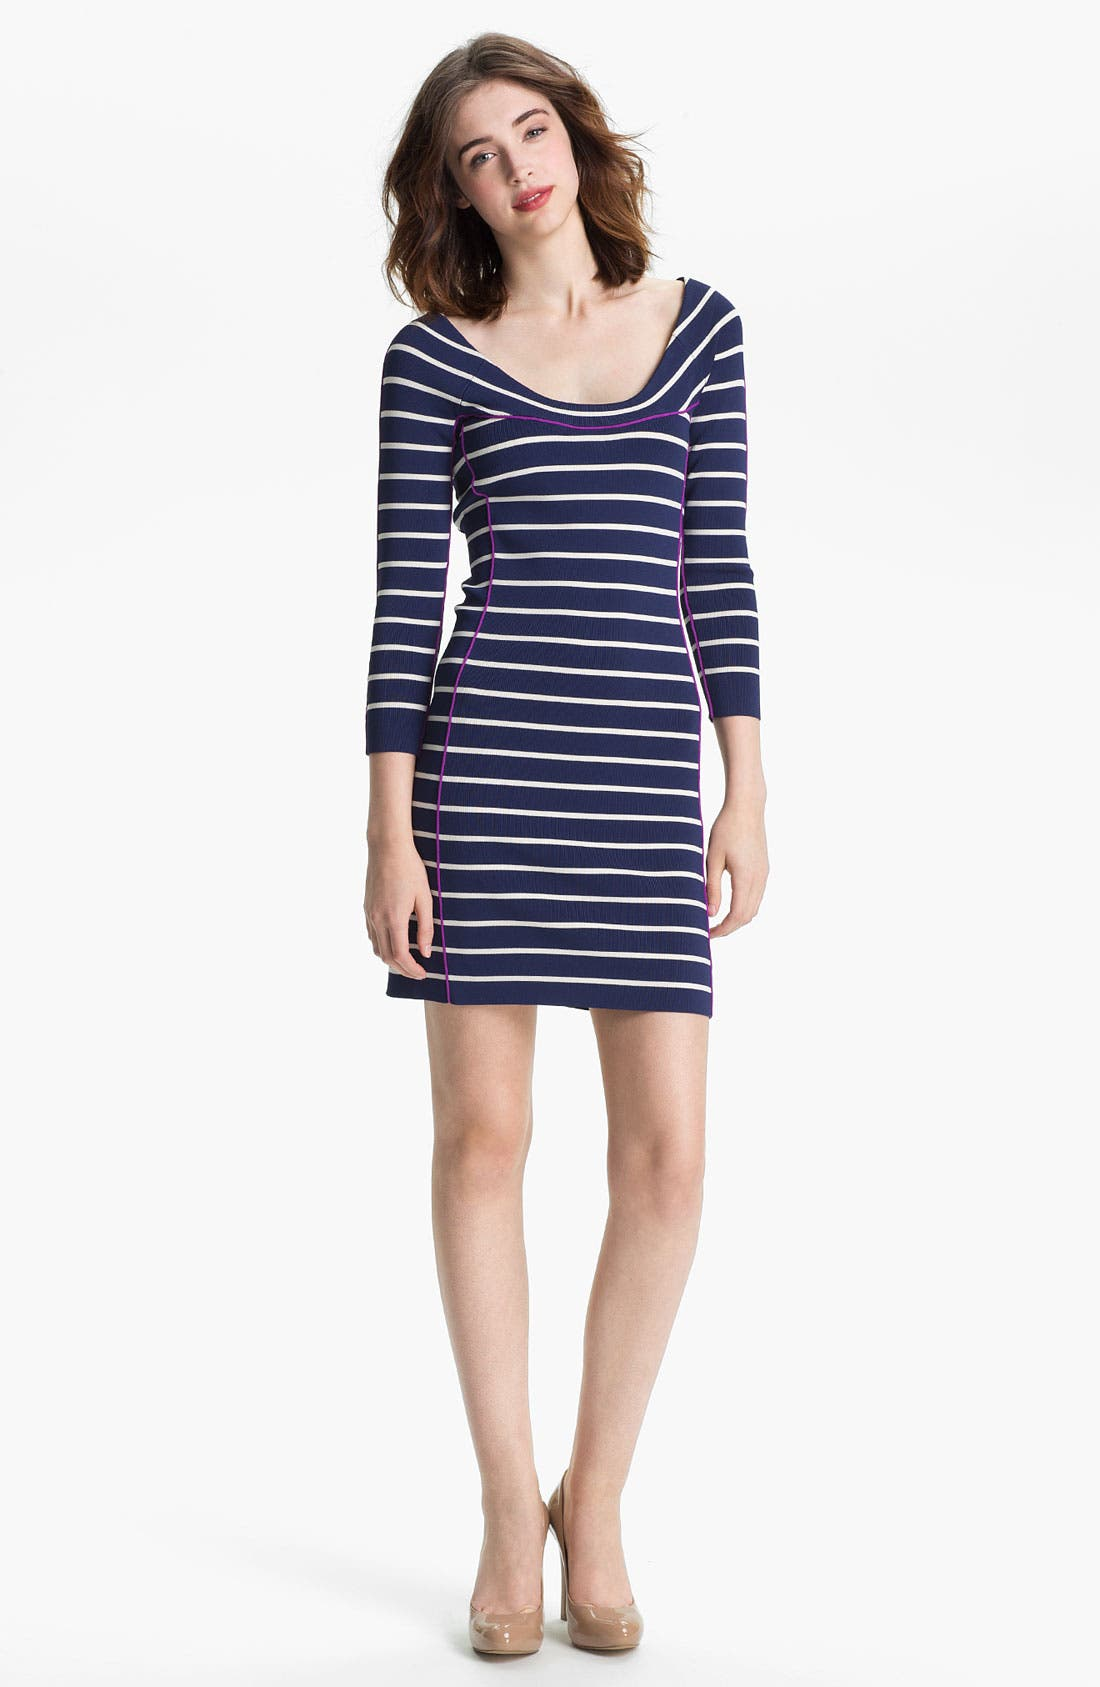 Main Image - Jessica Simpson Contrast Trim Stripe Knit Sheath Dress